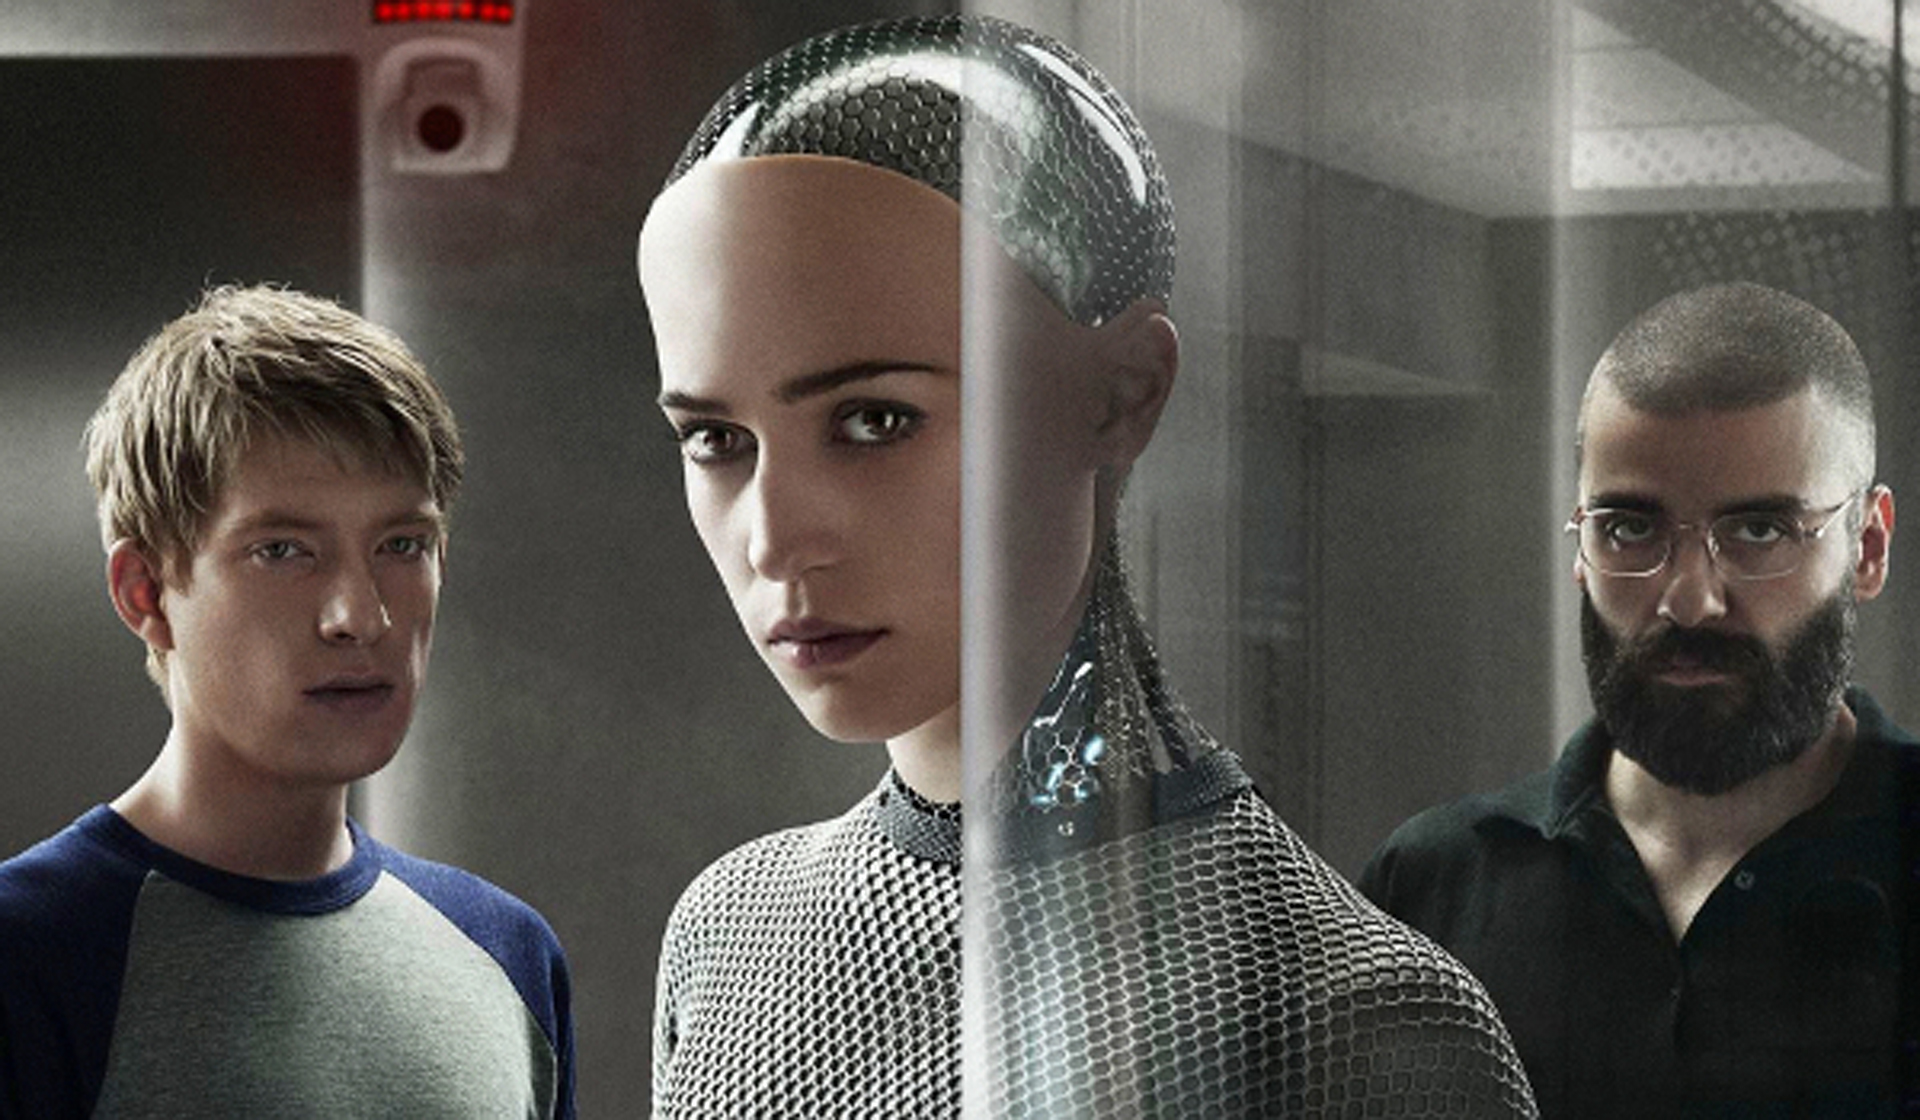 Domhnall Gleeson, Alicia Vikander and Oscar Isaac star in Ex Machina.